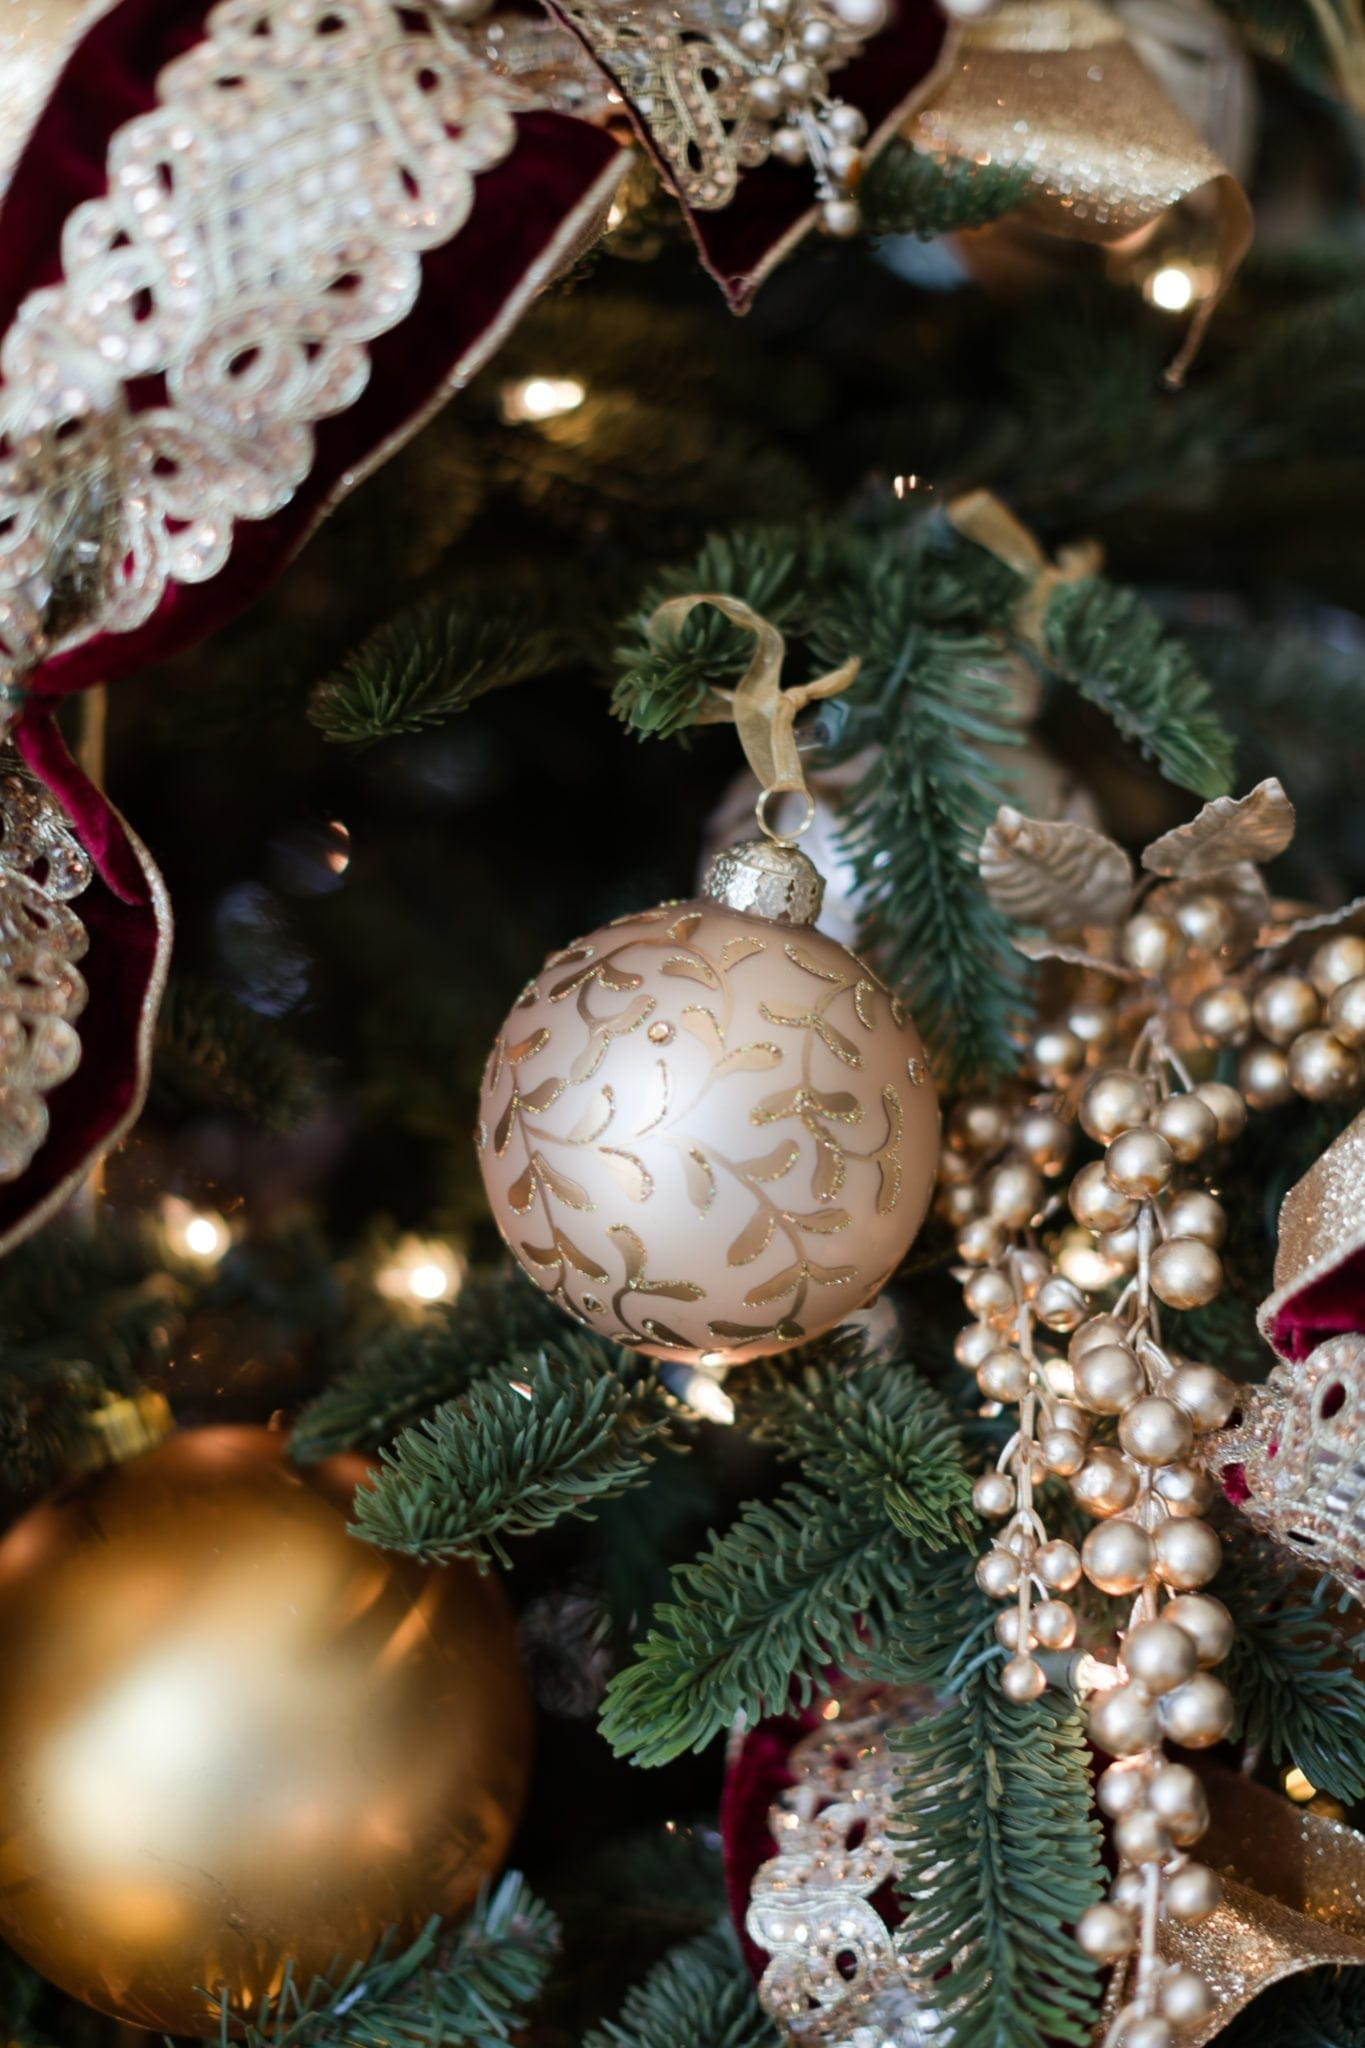 Best artificial Christmas trees. Tips to find the best one.